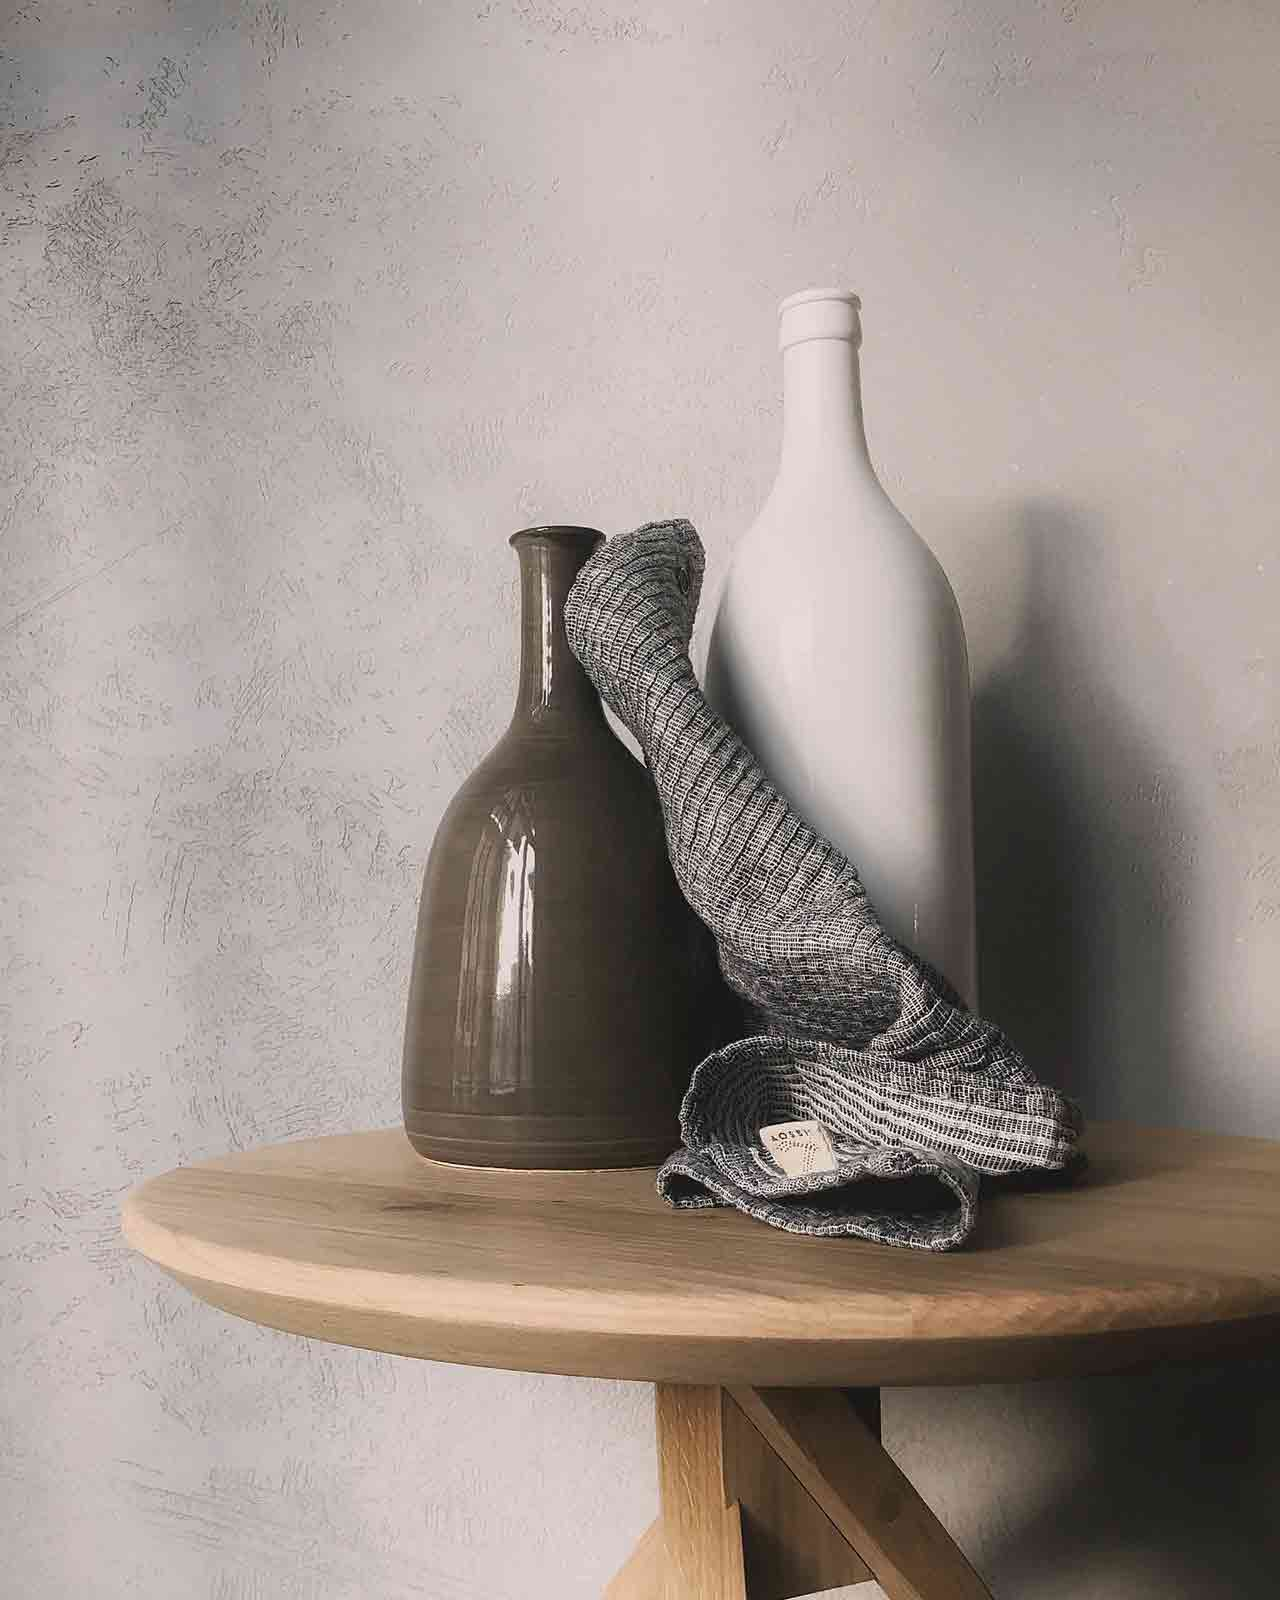 two-vases-on-table-842950